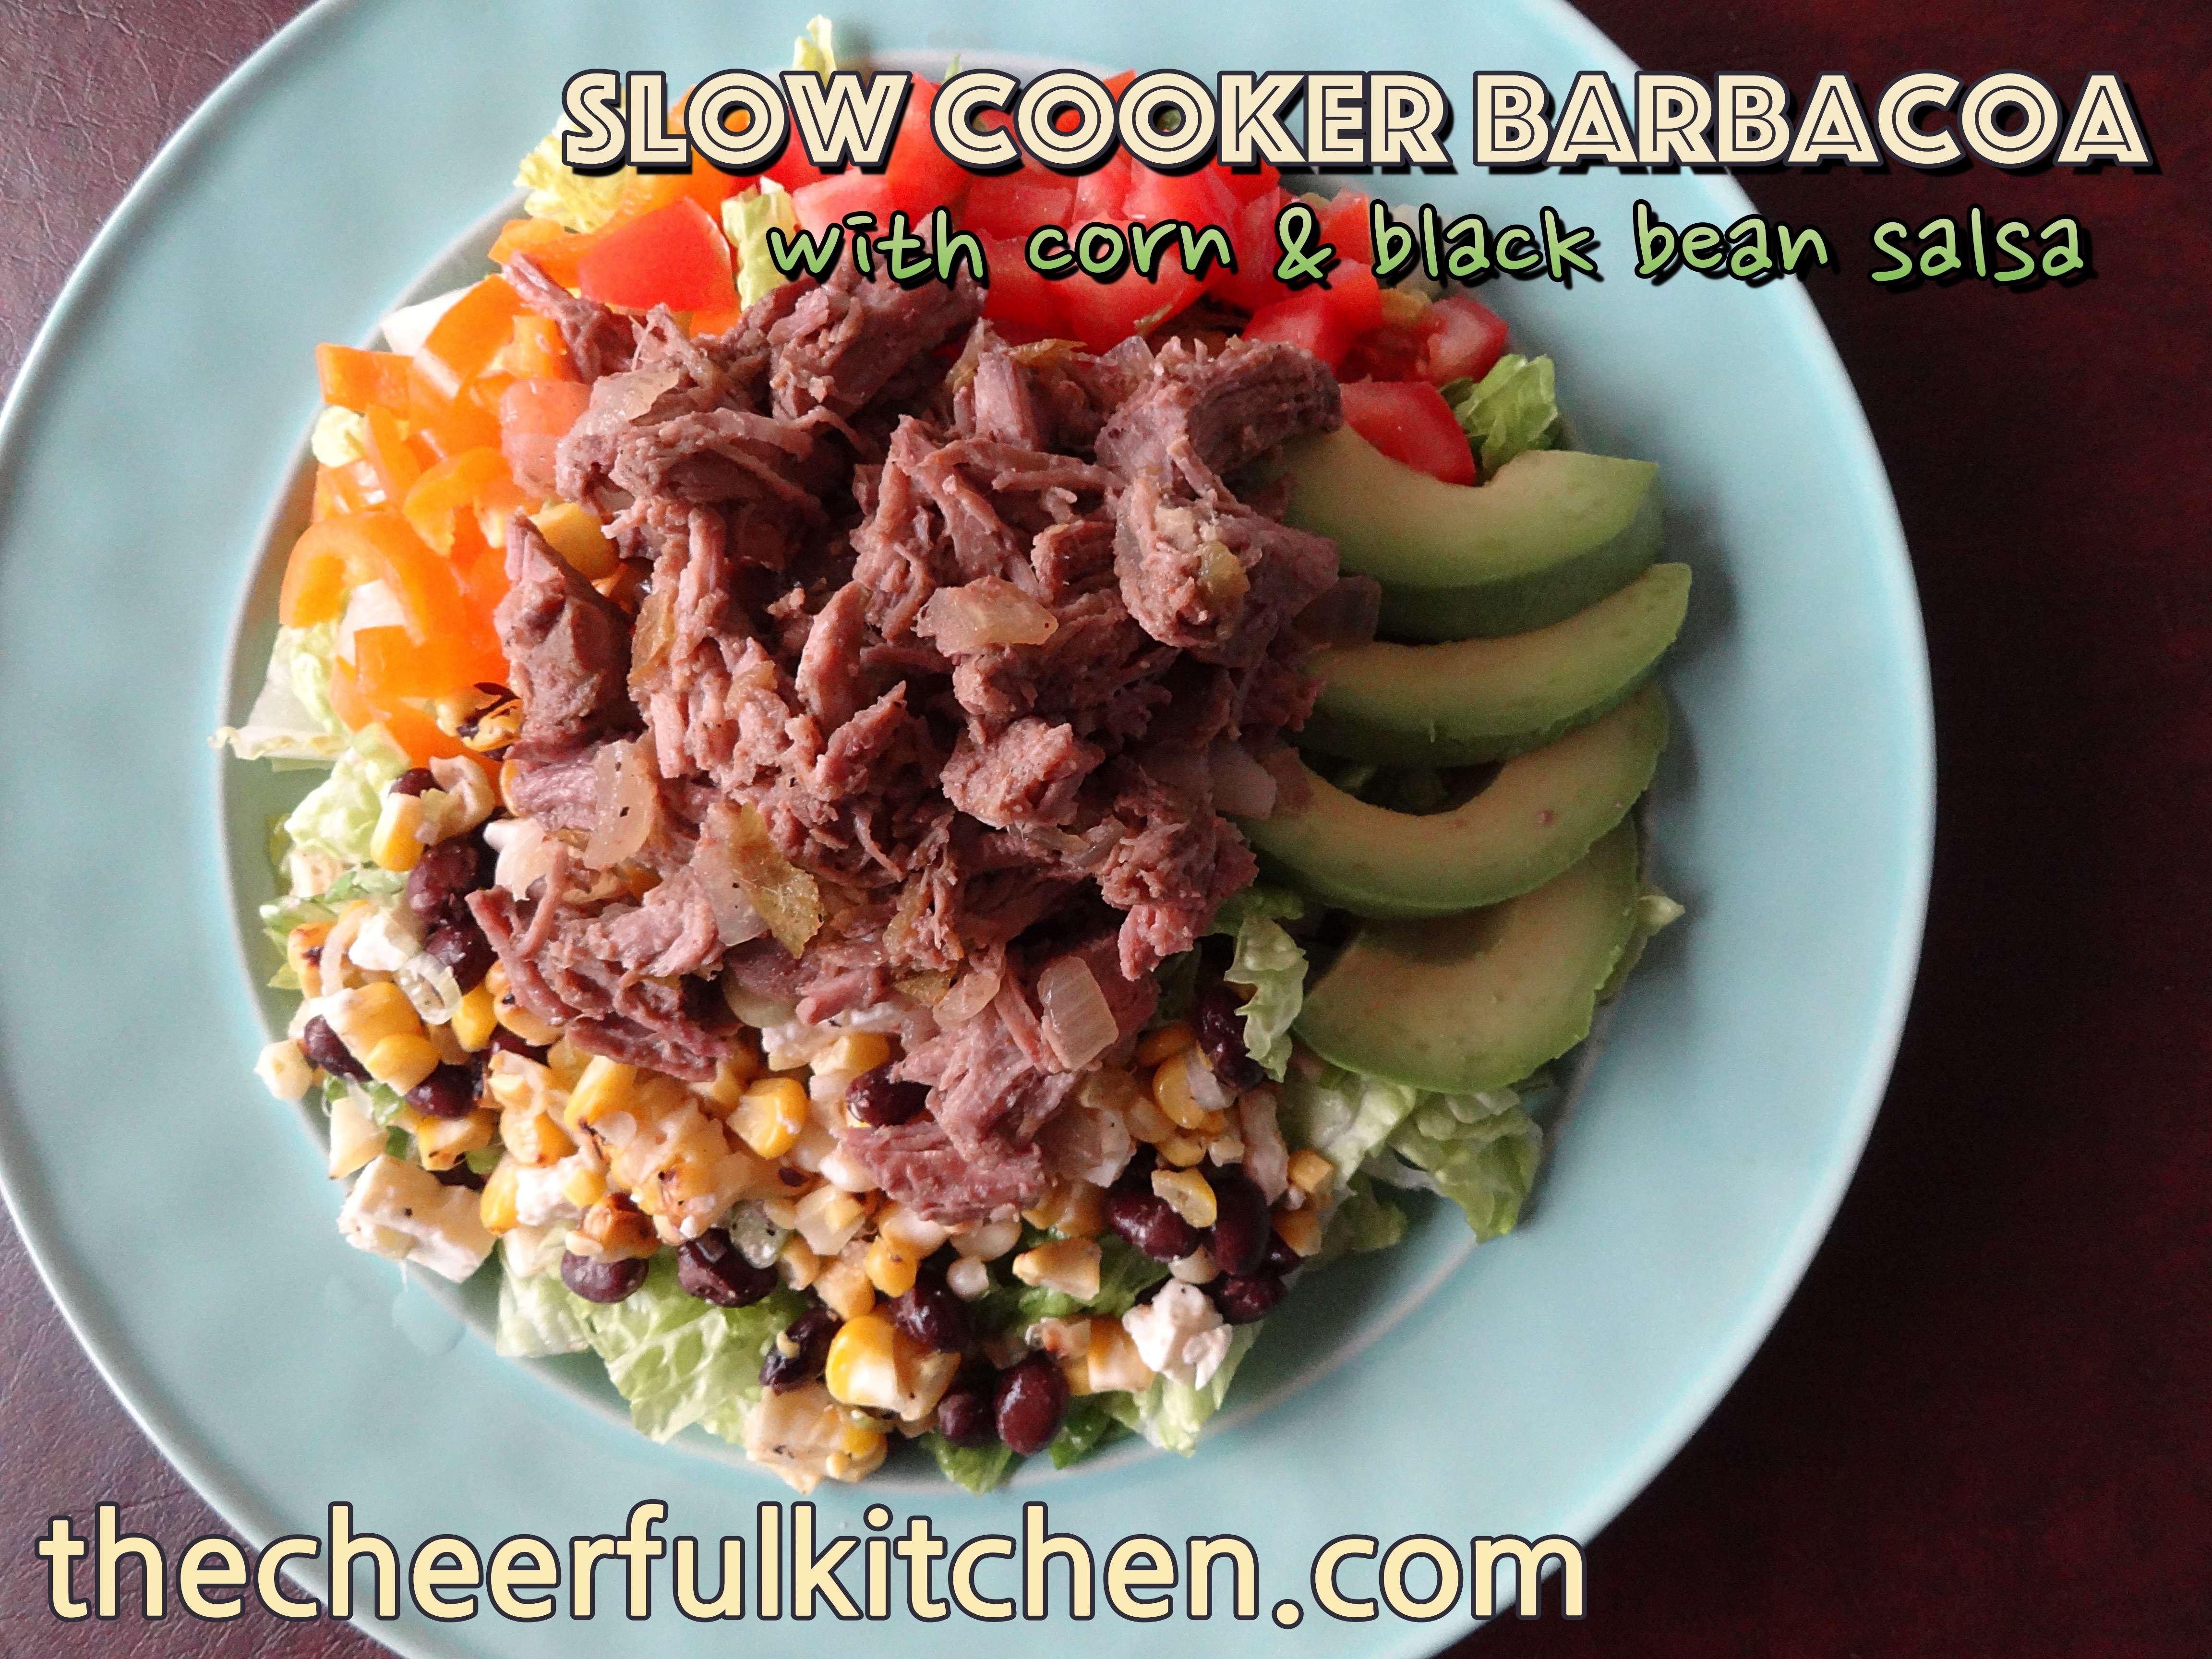 barbacoa taco salad the cheerful kitchen2